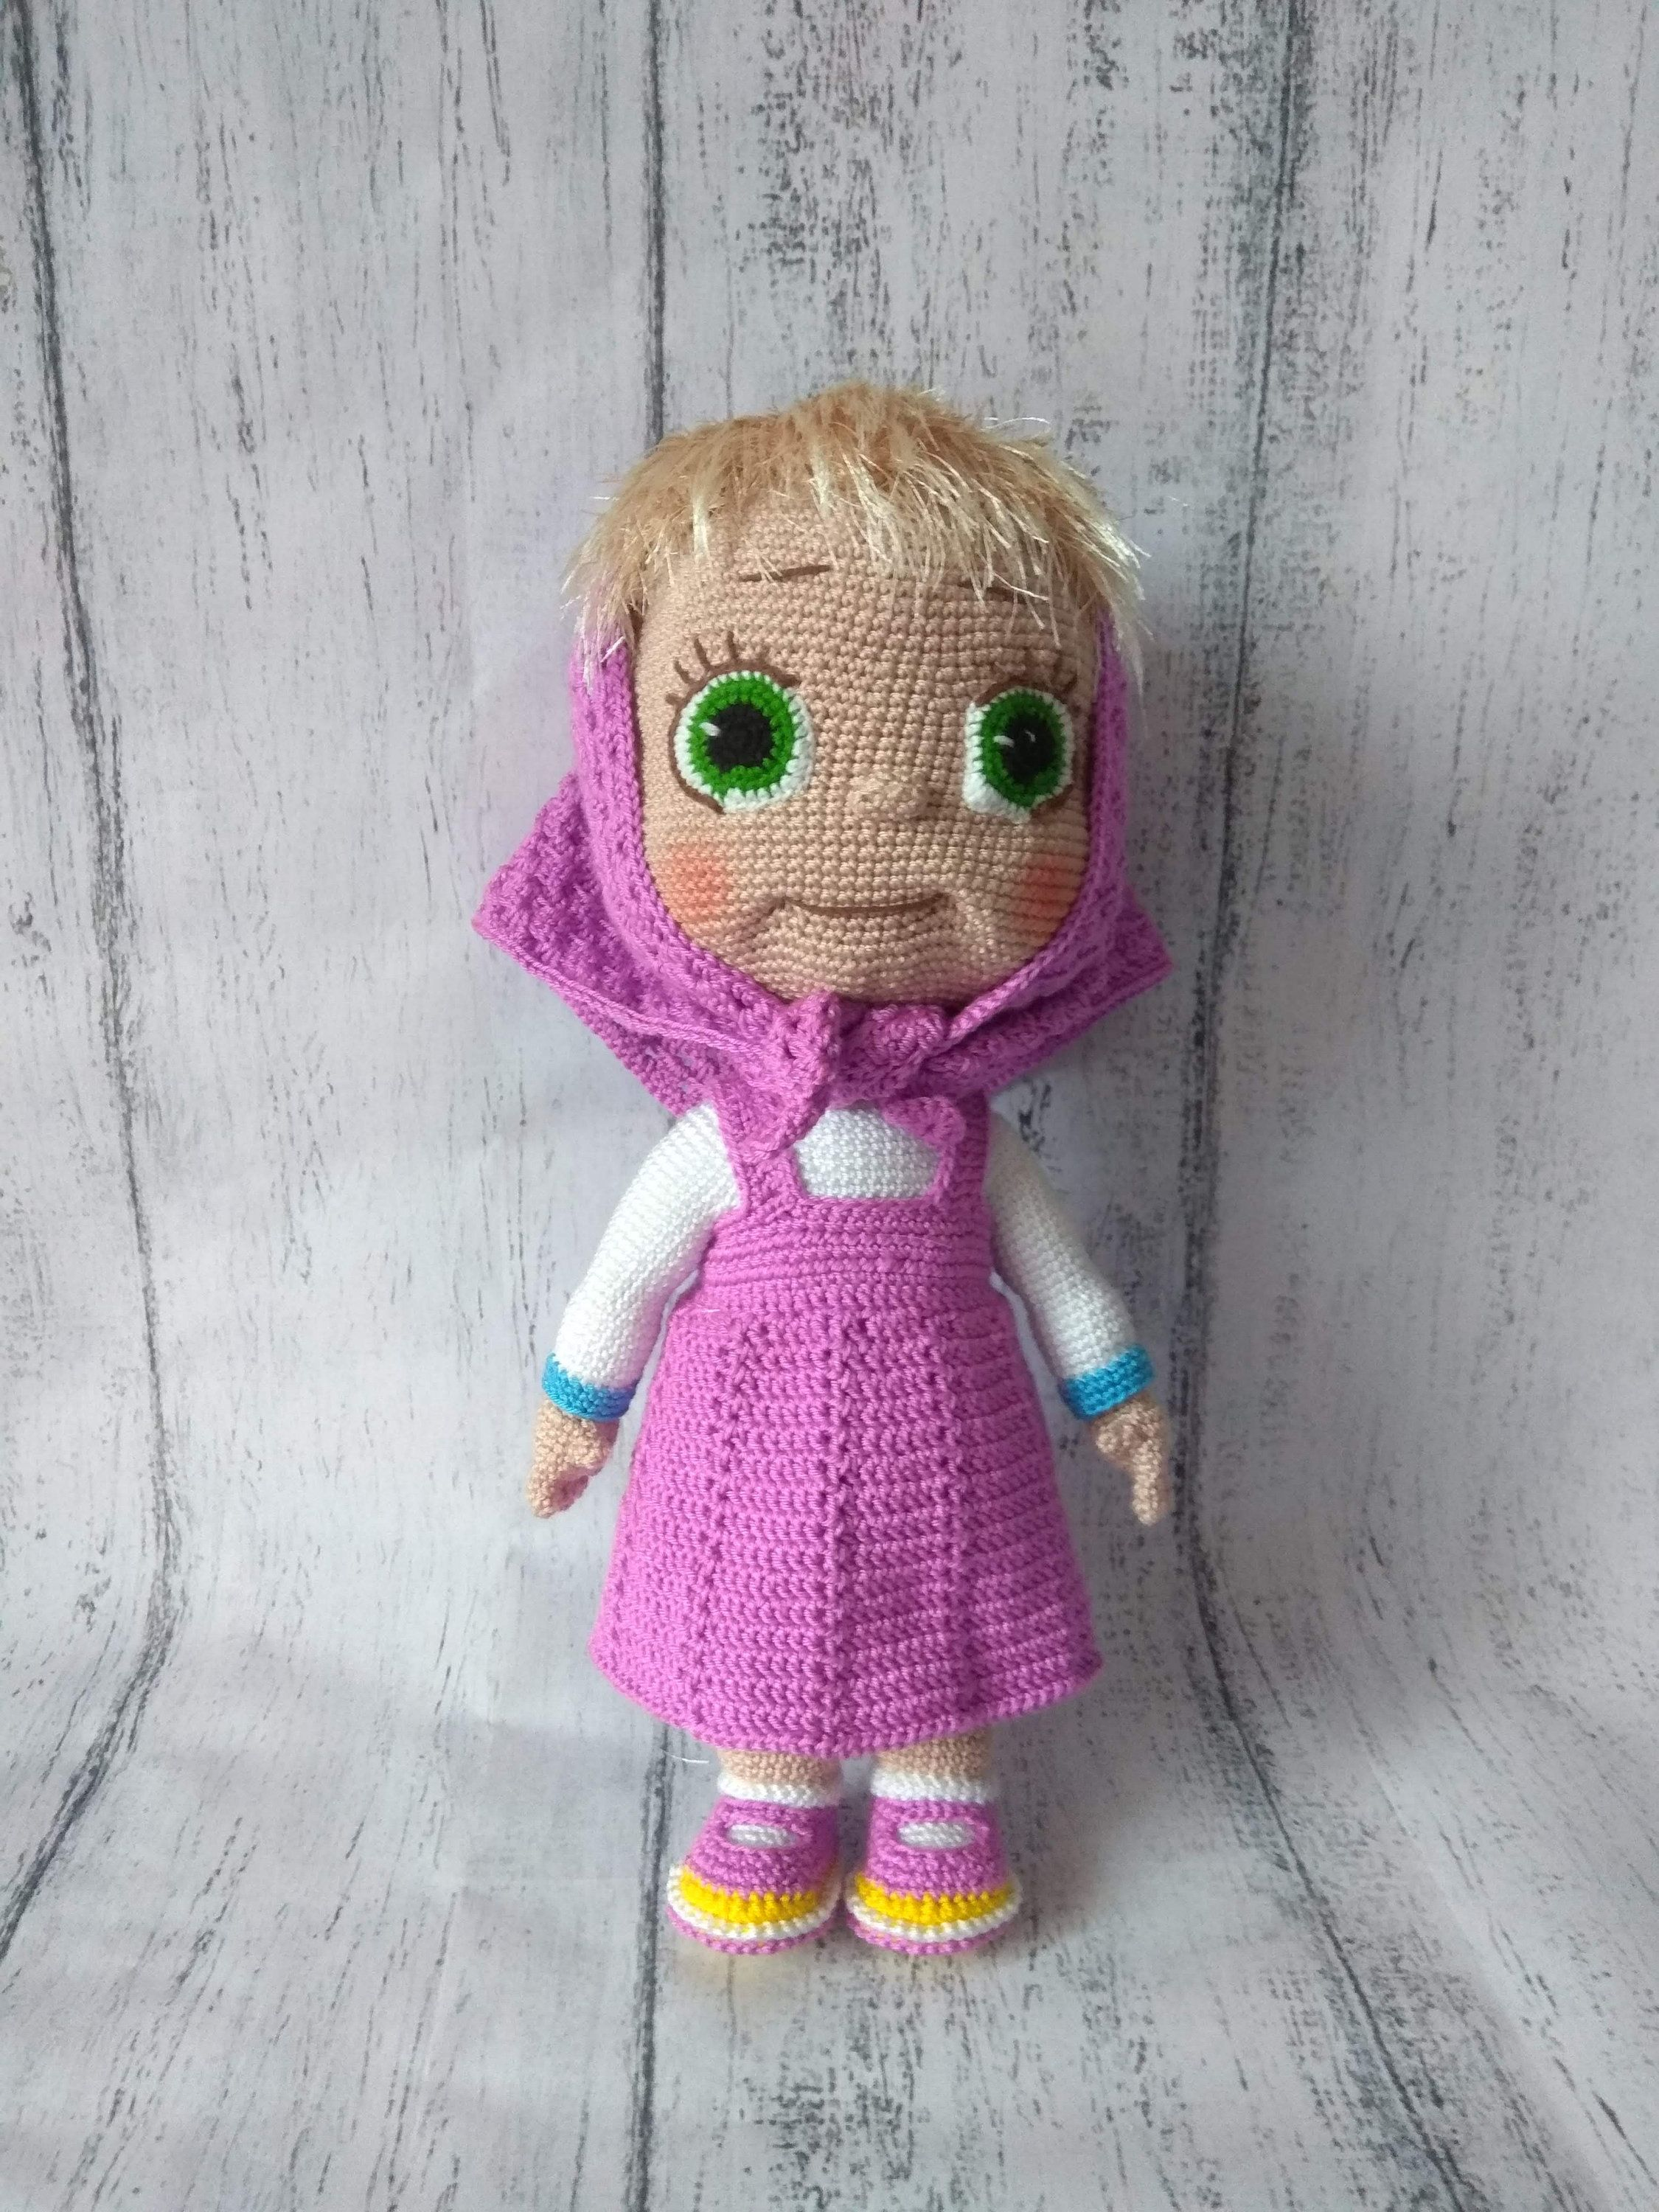 Amigurumi Crochet Pattern Masha And The Bear The Russian Girl ... | 3000x2250